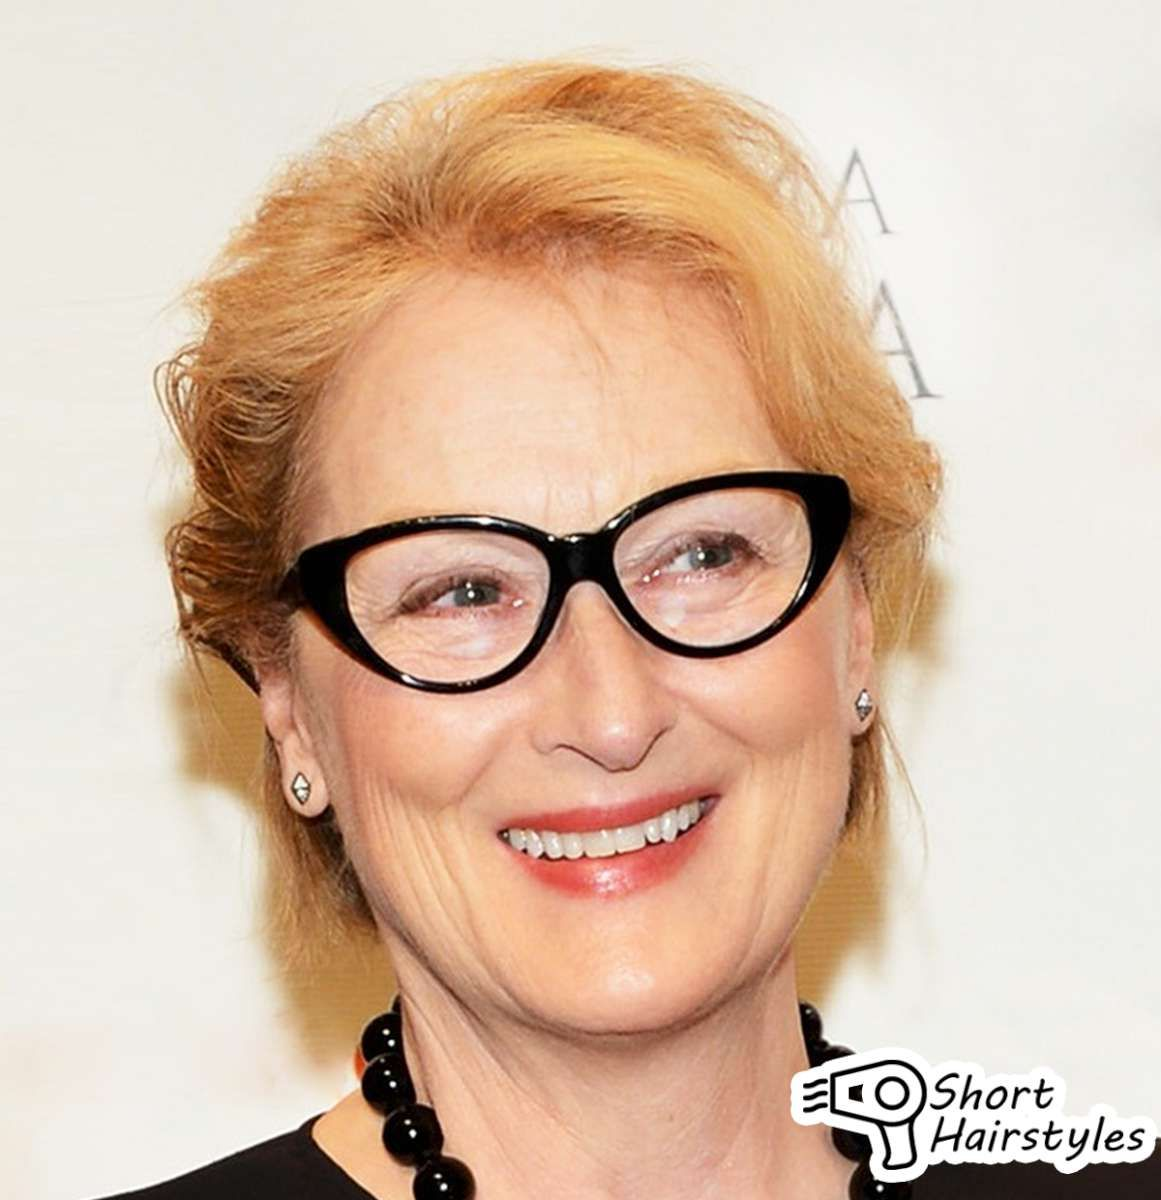 Short hairstyles with glasses - 11 Short Hairstyles For Over 50 With Glasses